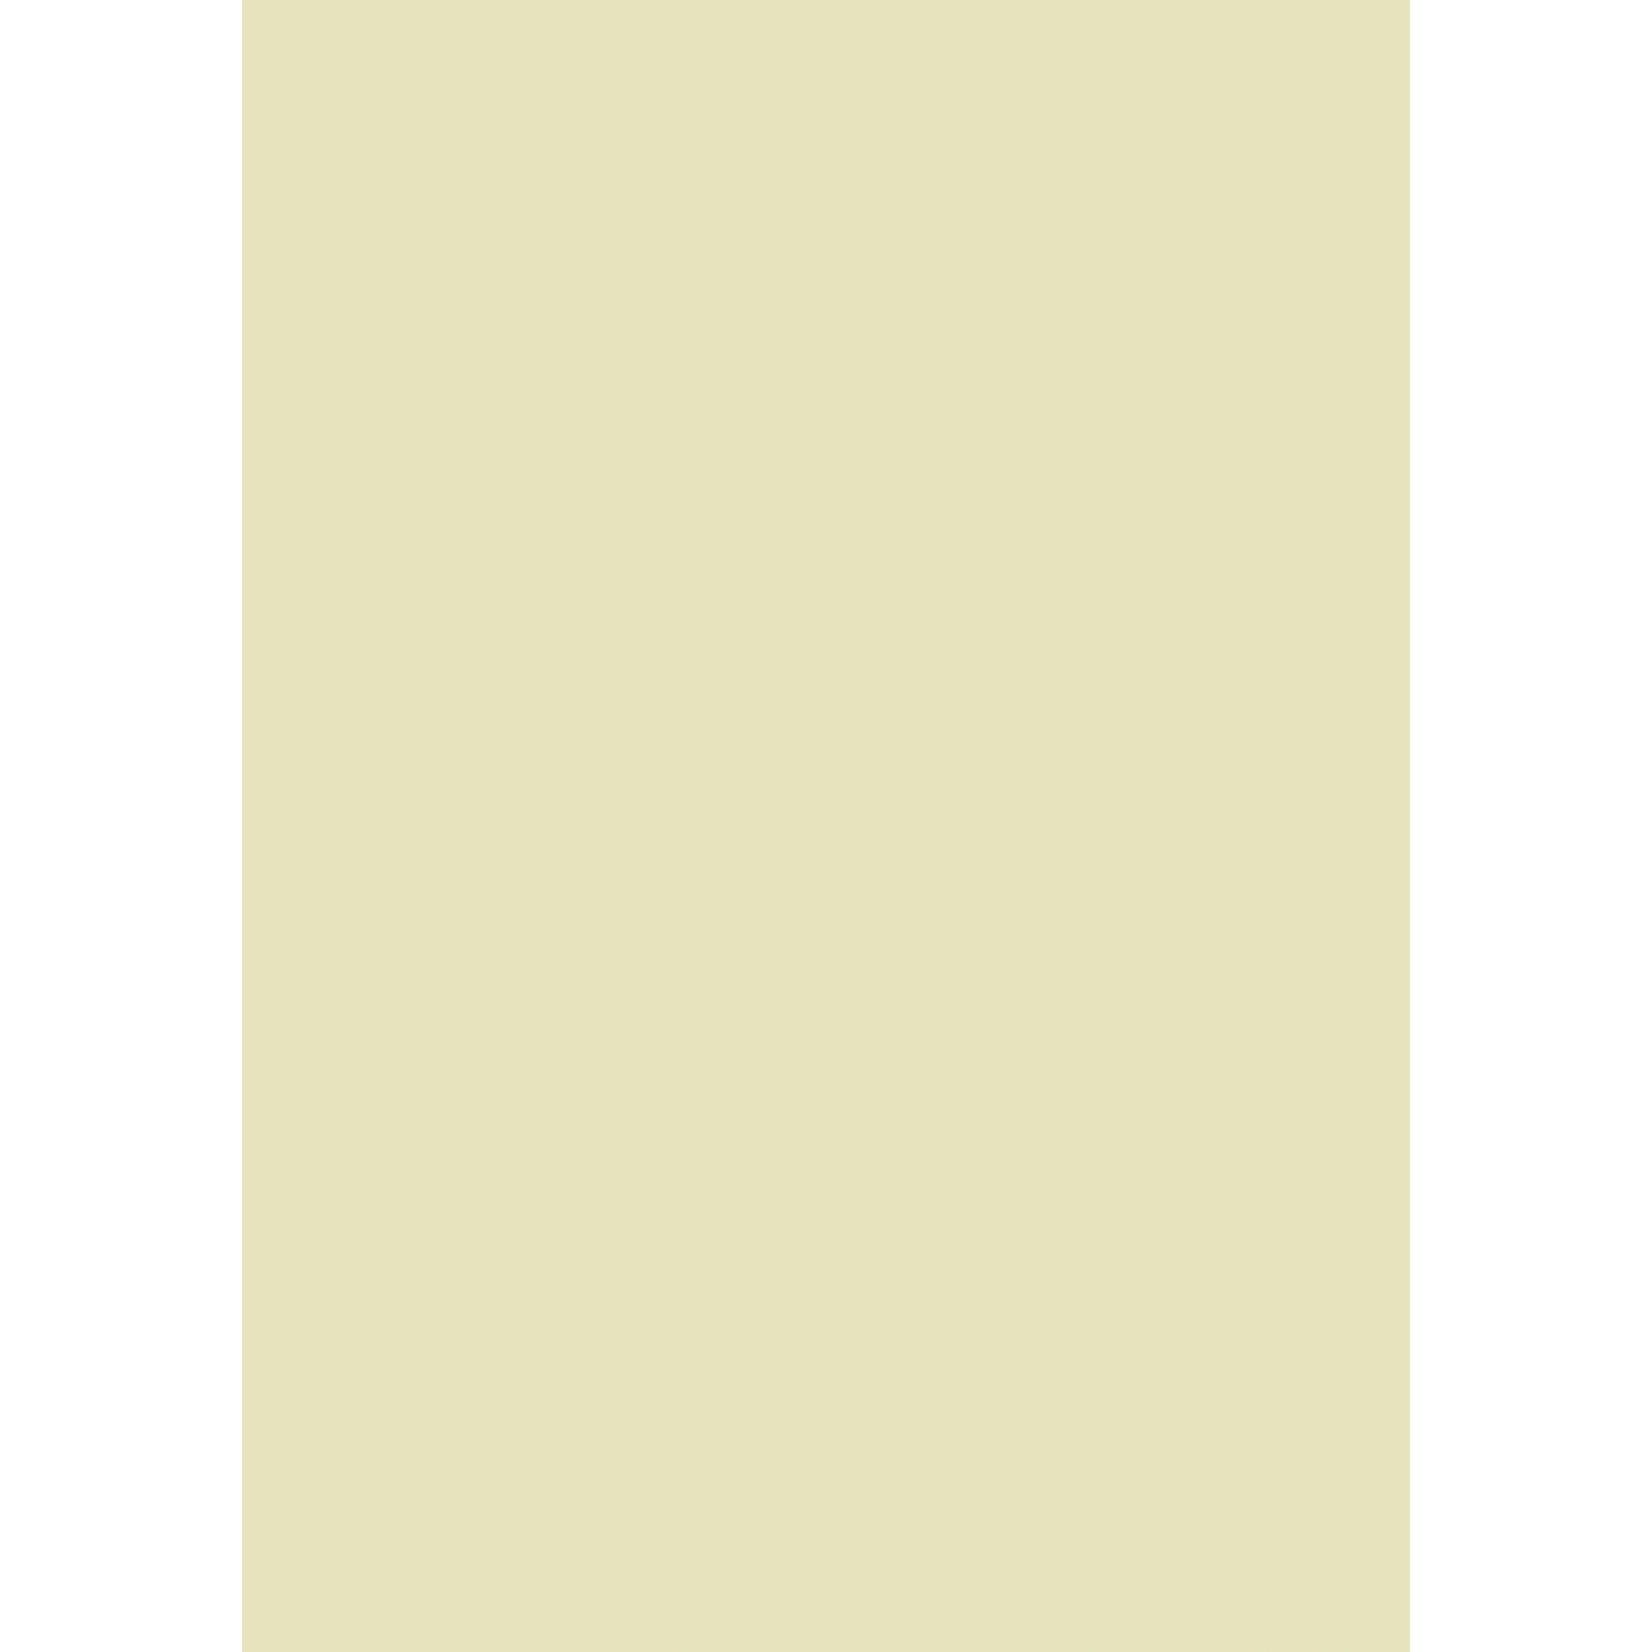 FARROW & BALL GREEN GROUND - No. 206